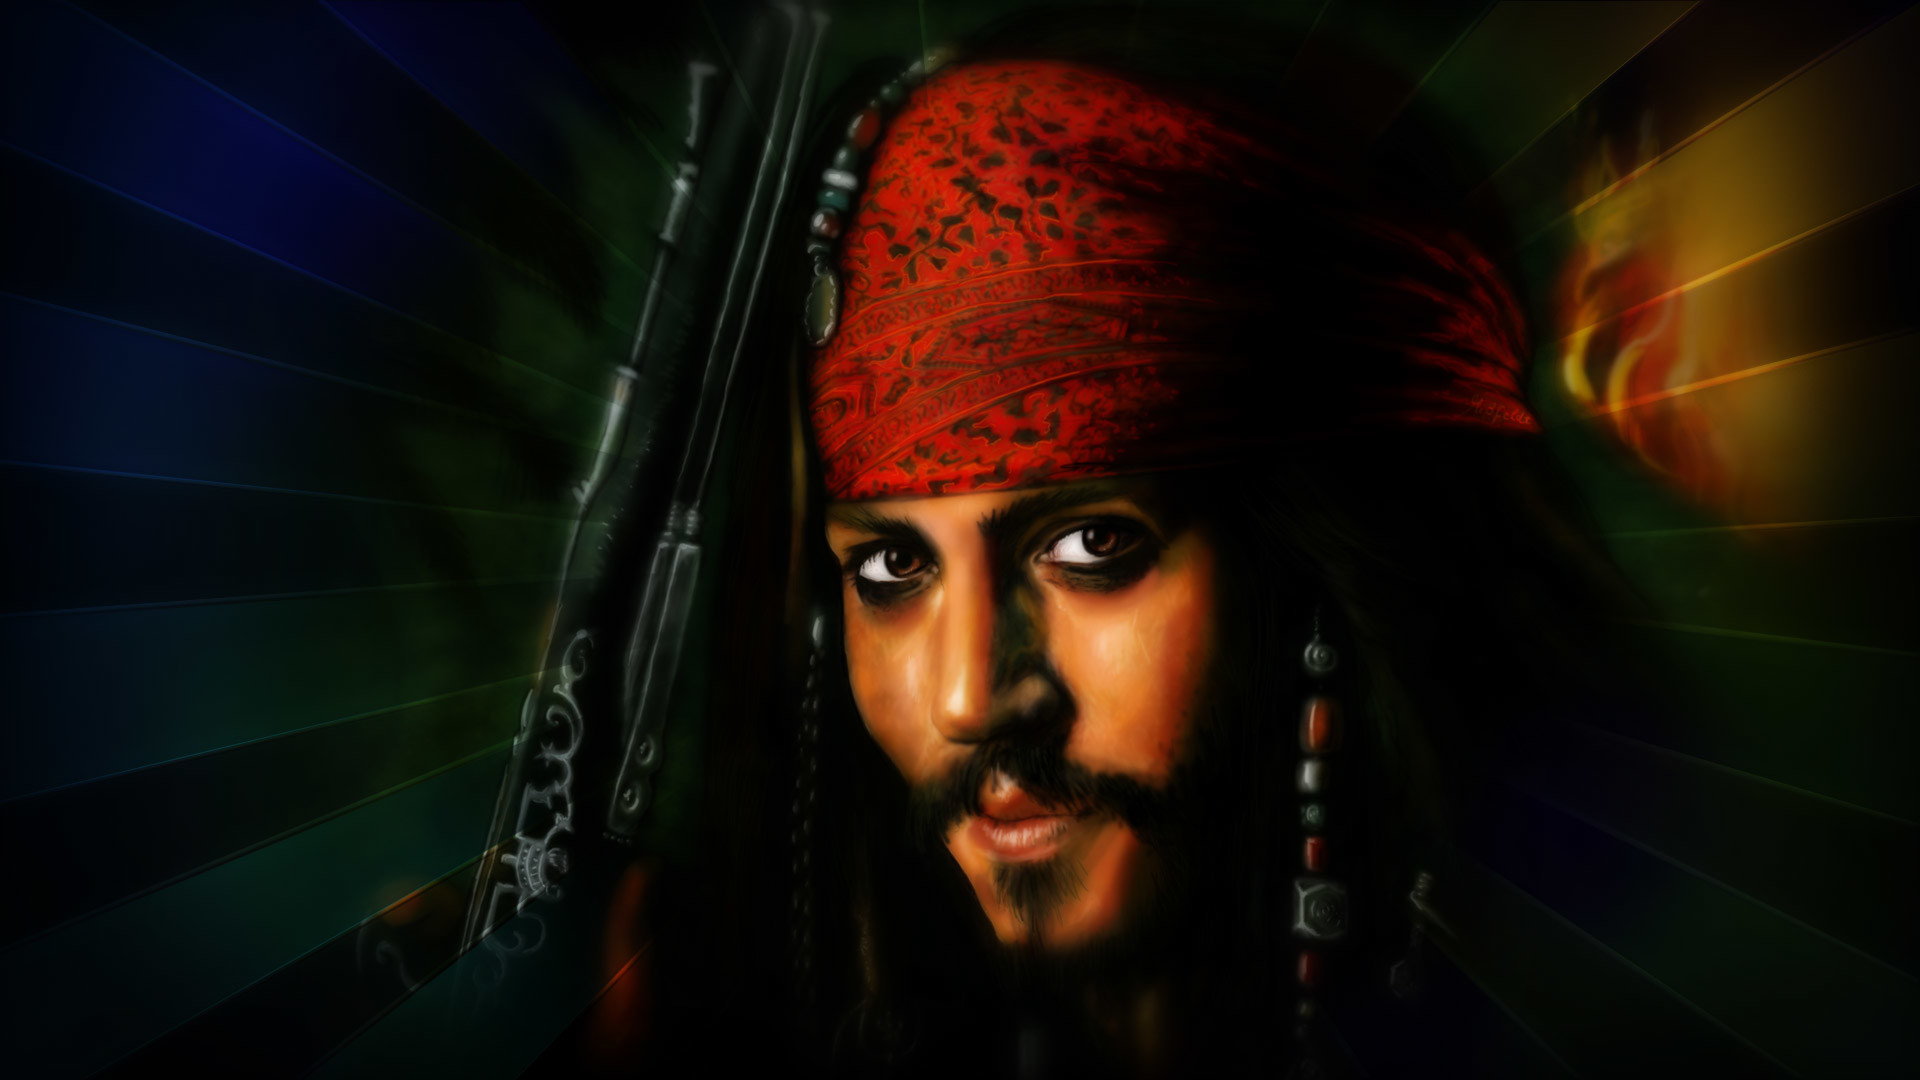 1080p Images Jack Sparrow Animated Hd Wallpaper